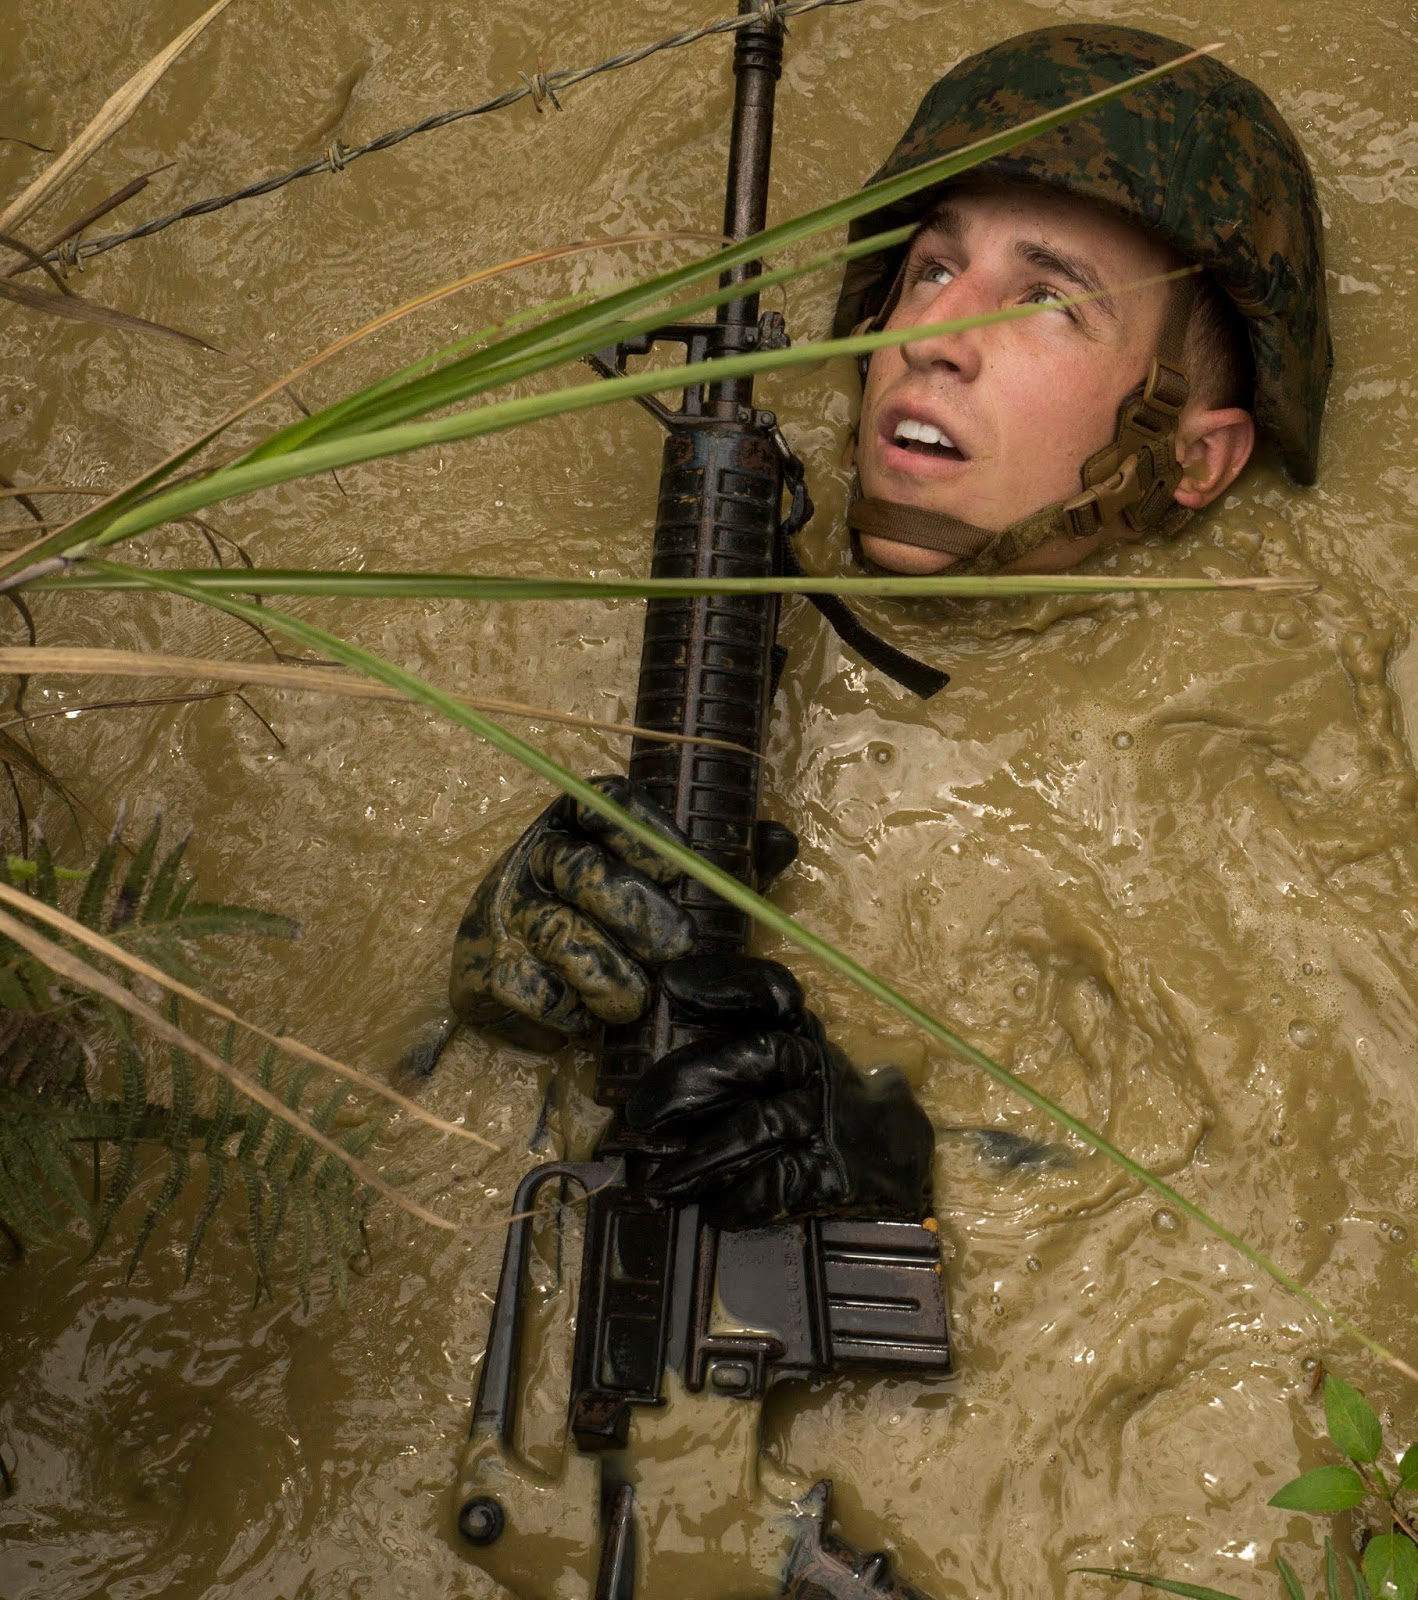 A man in military gear is nearly submersed in dirty water with only his face, hands, and gun, above the water